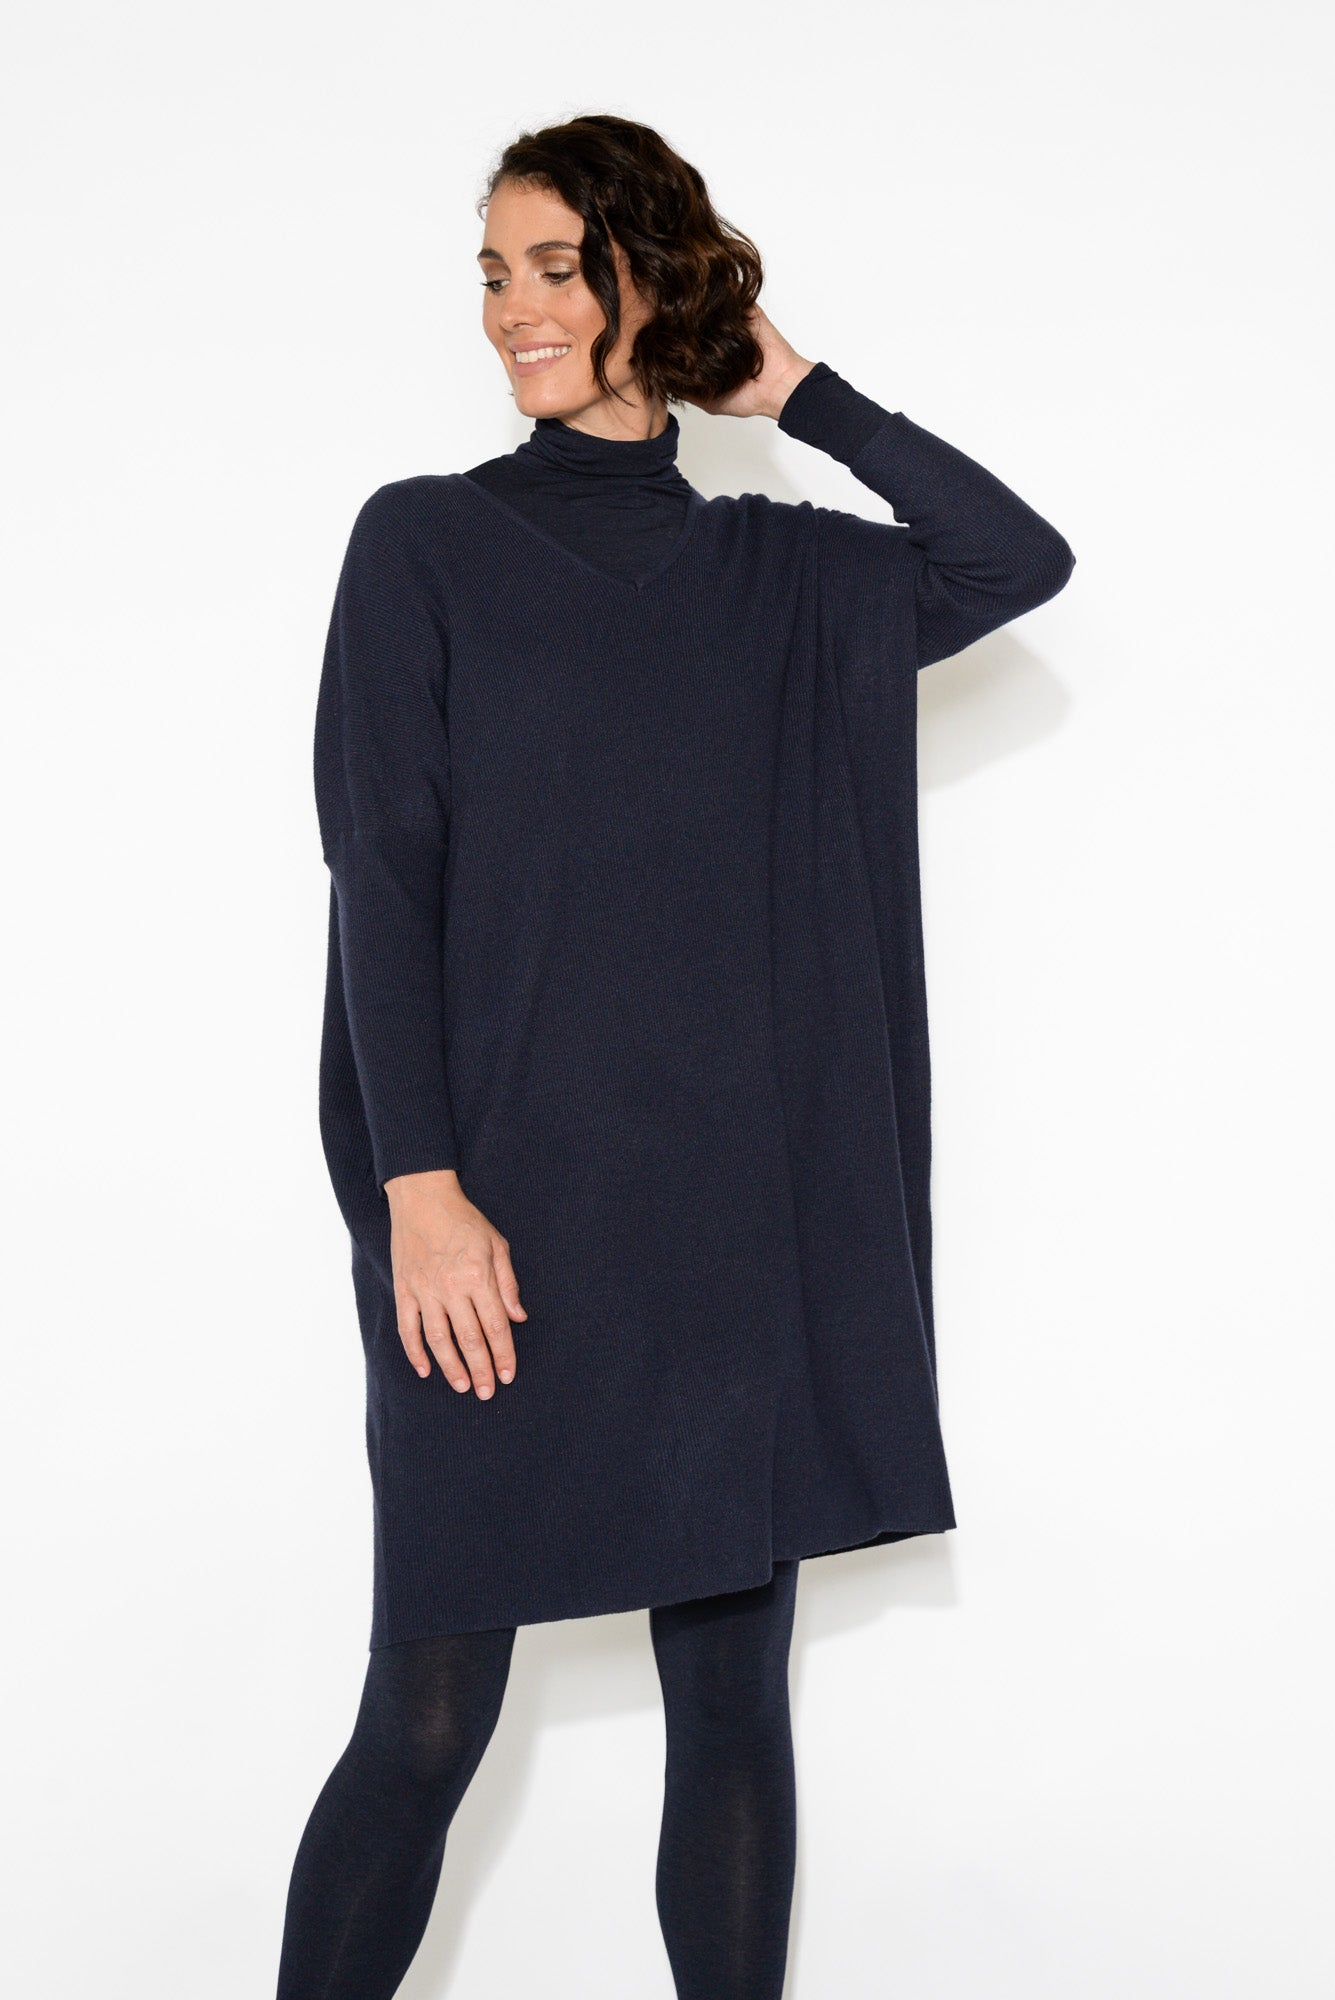 Lola Navy Knitted Tunic